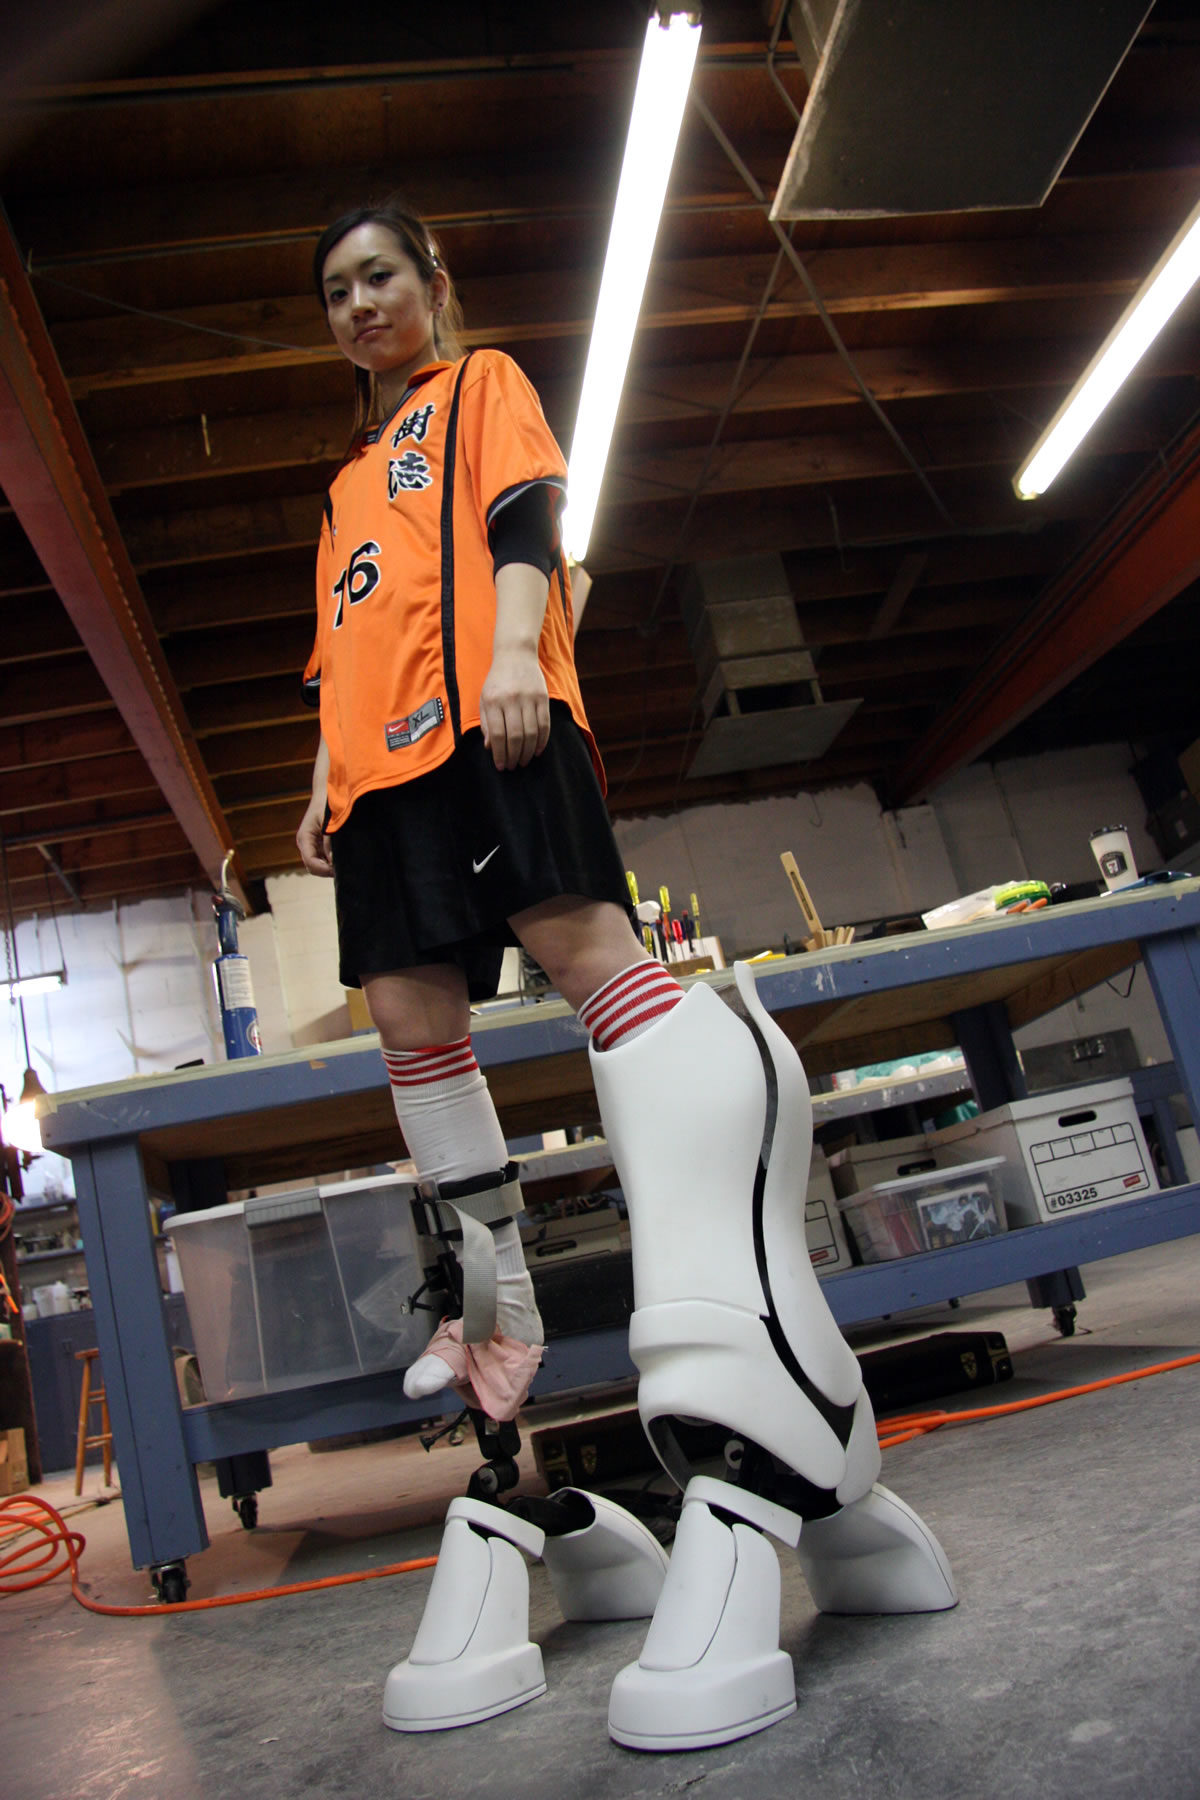 Fiberglass boots for a Japanese commercial